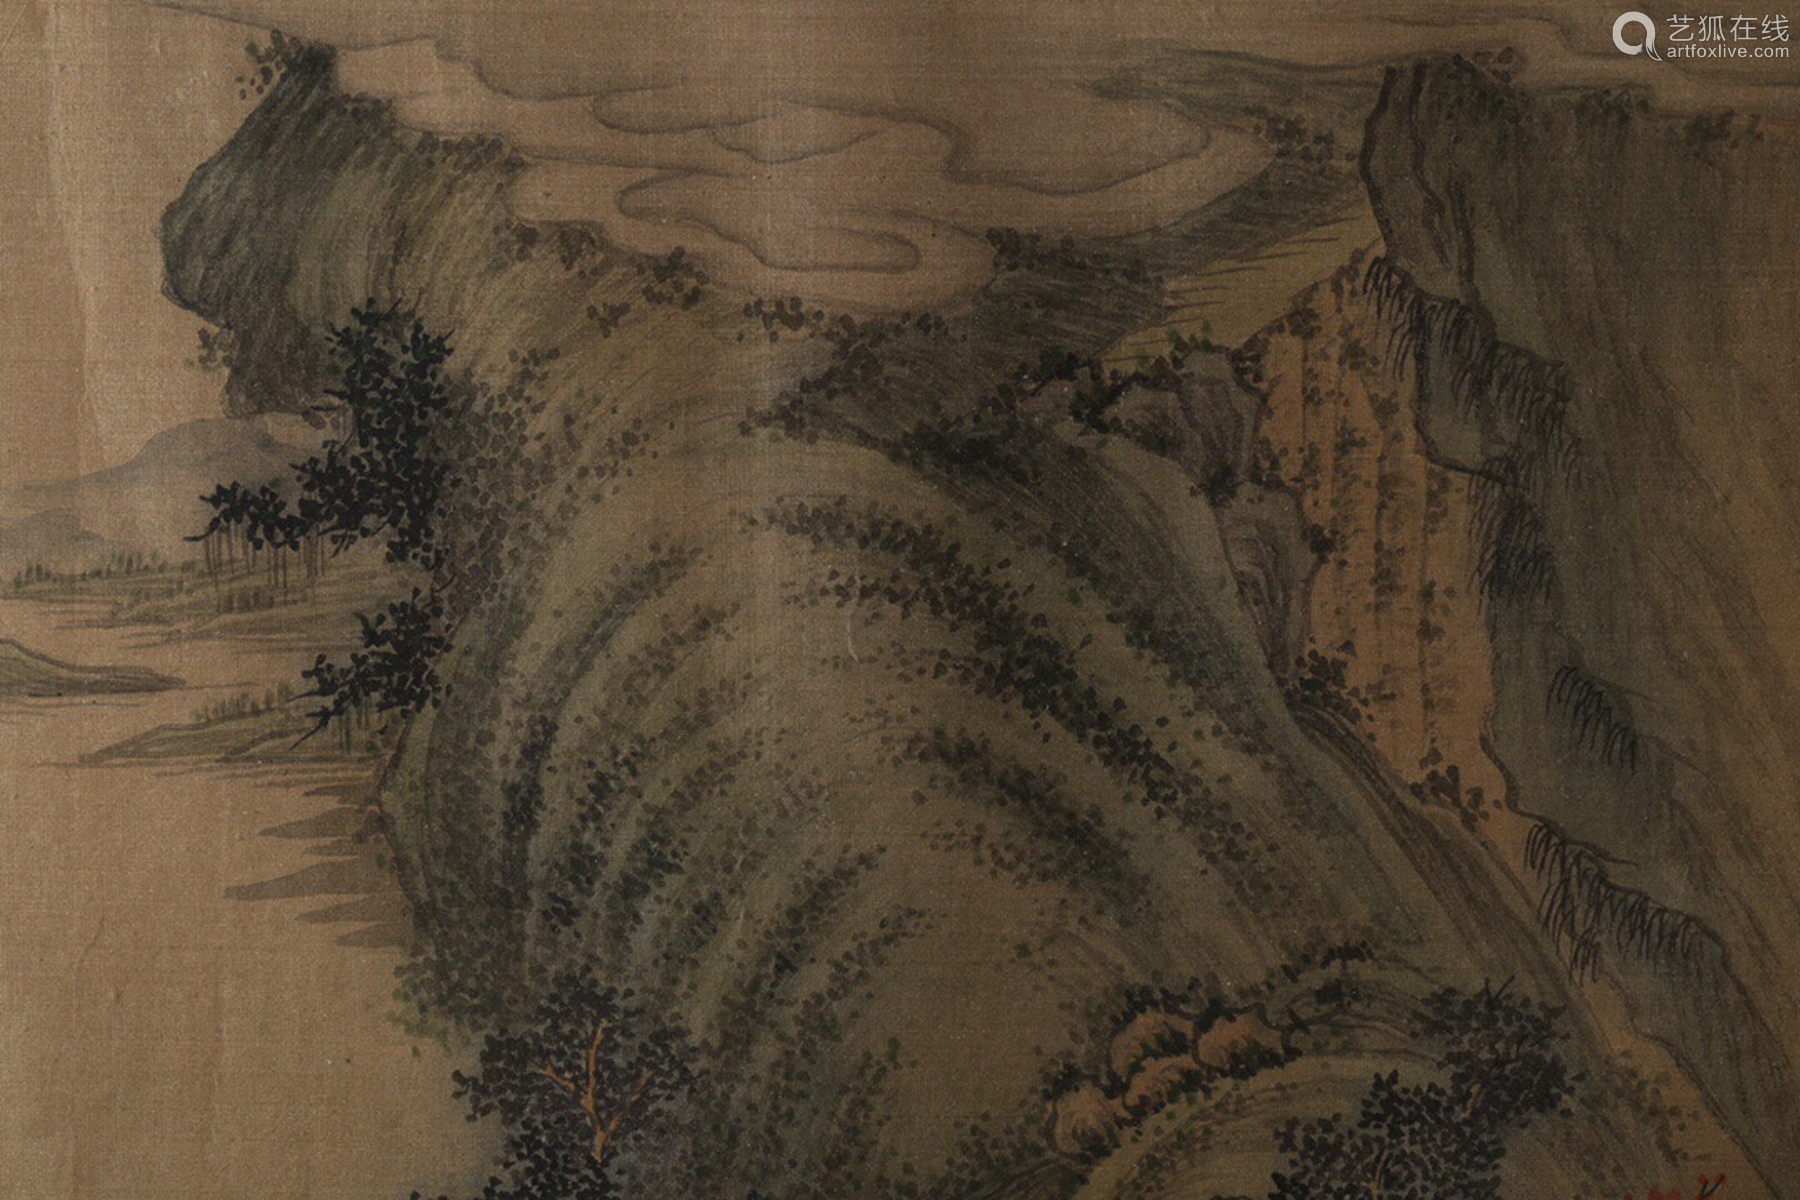 17-19TH CENTURY, A LANDSCAPE PAINTING, QING DYNASTY